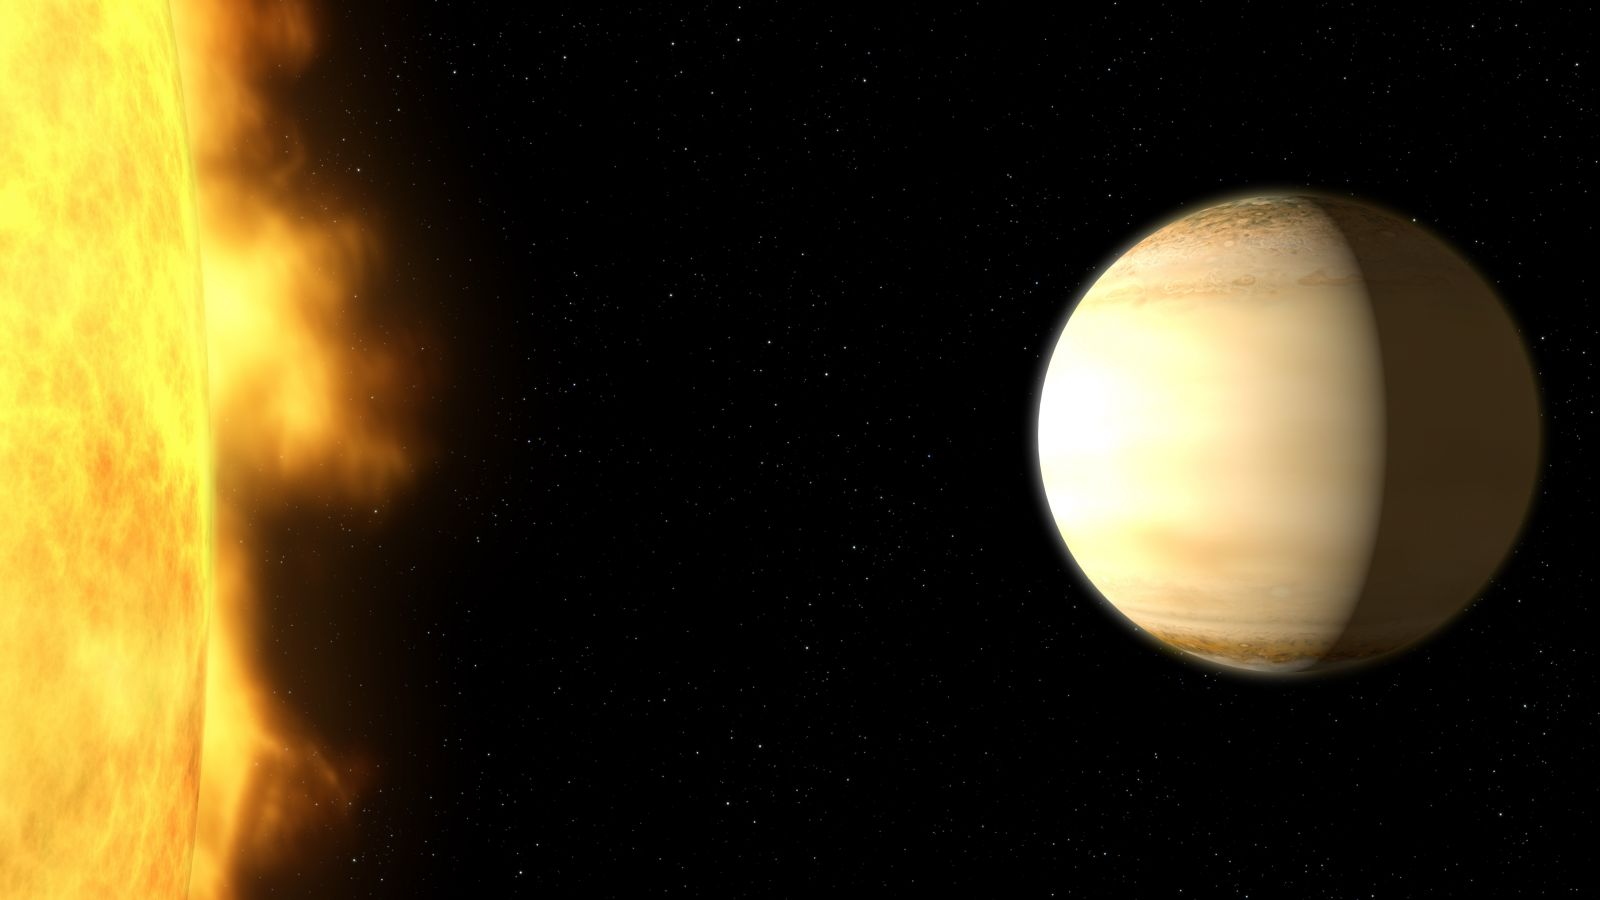 An artist's depiction of WASP-39b and its parent star. They are located some 700 light-years from Earth. Image Credit: NASA / ESA / G. Bacon and A. Feild / H. Wakeford